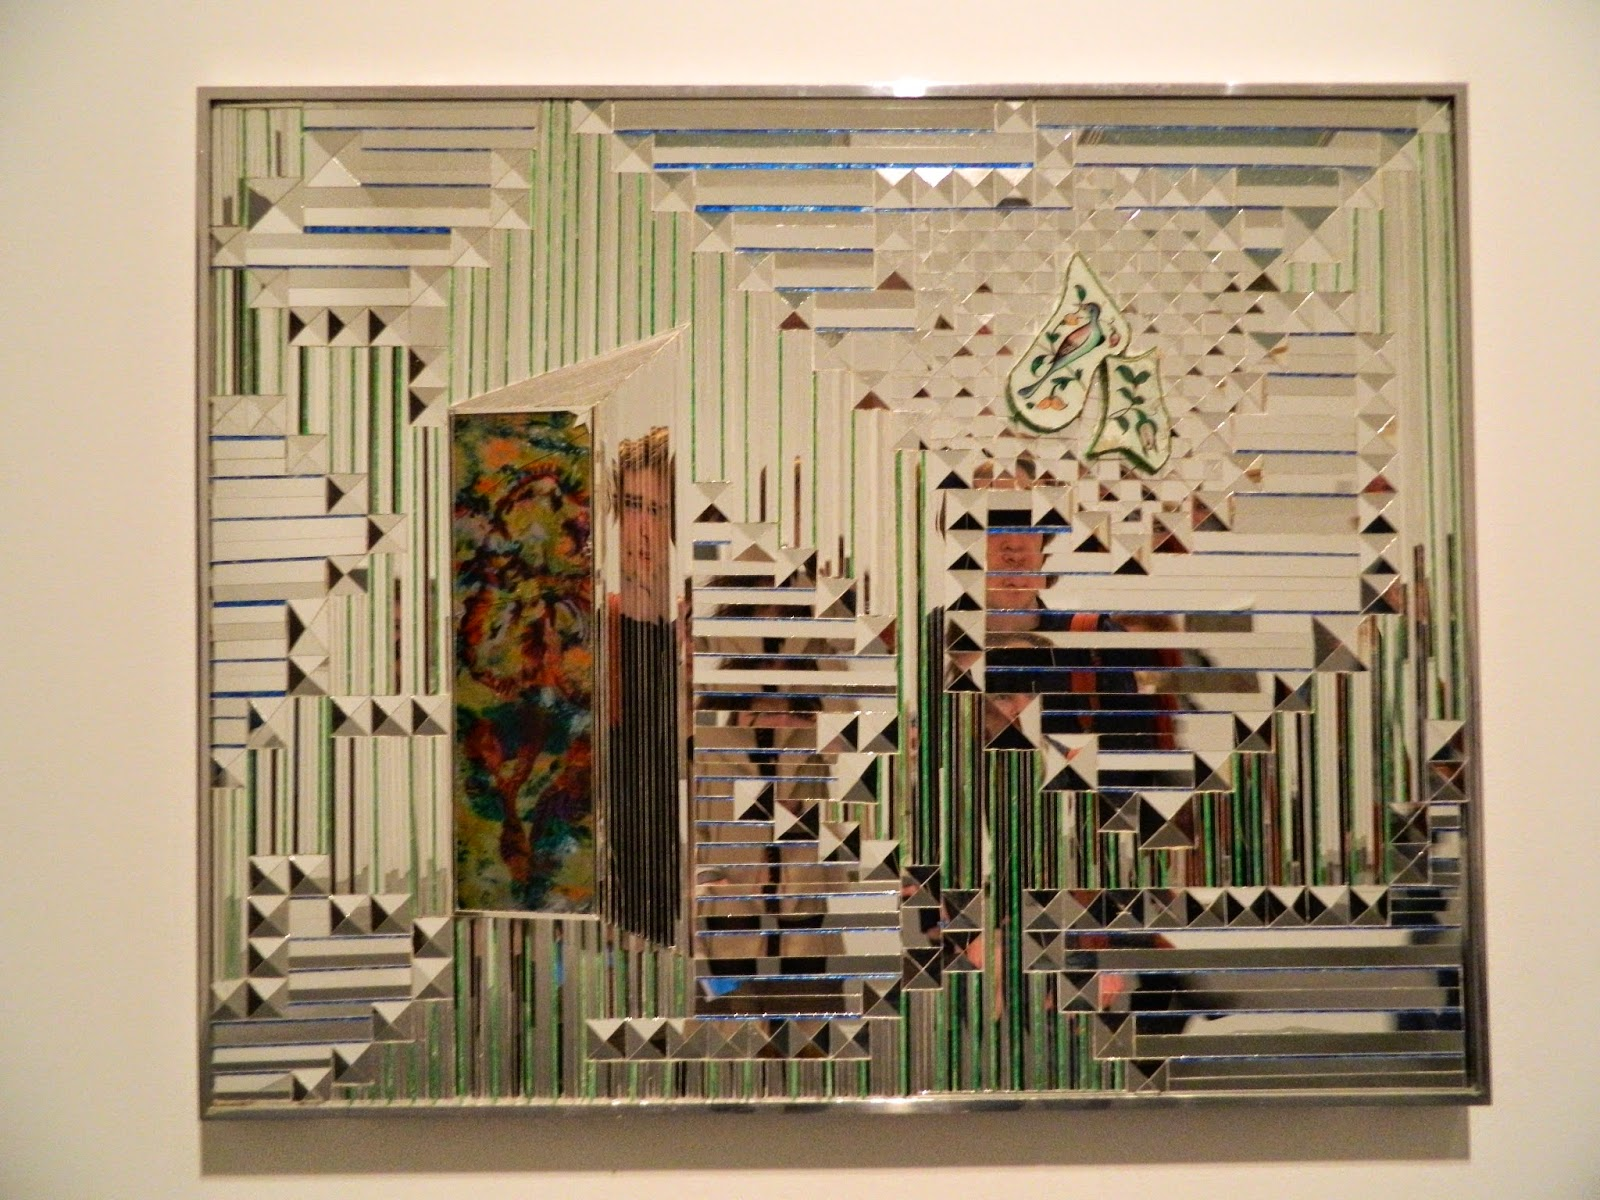 Monir Shahroudy Farmanfarmaian, Something Old Something New, tate gallery mirror reflection